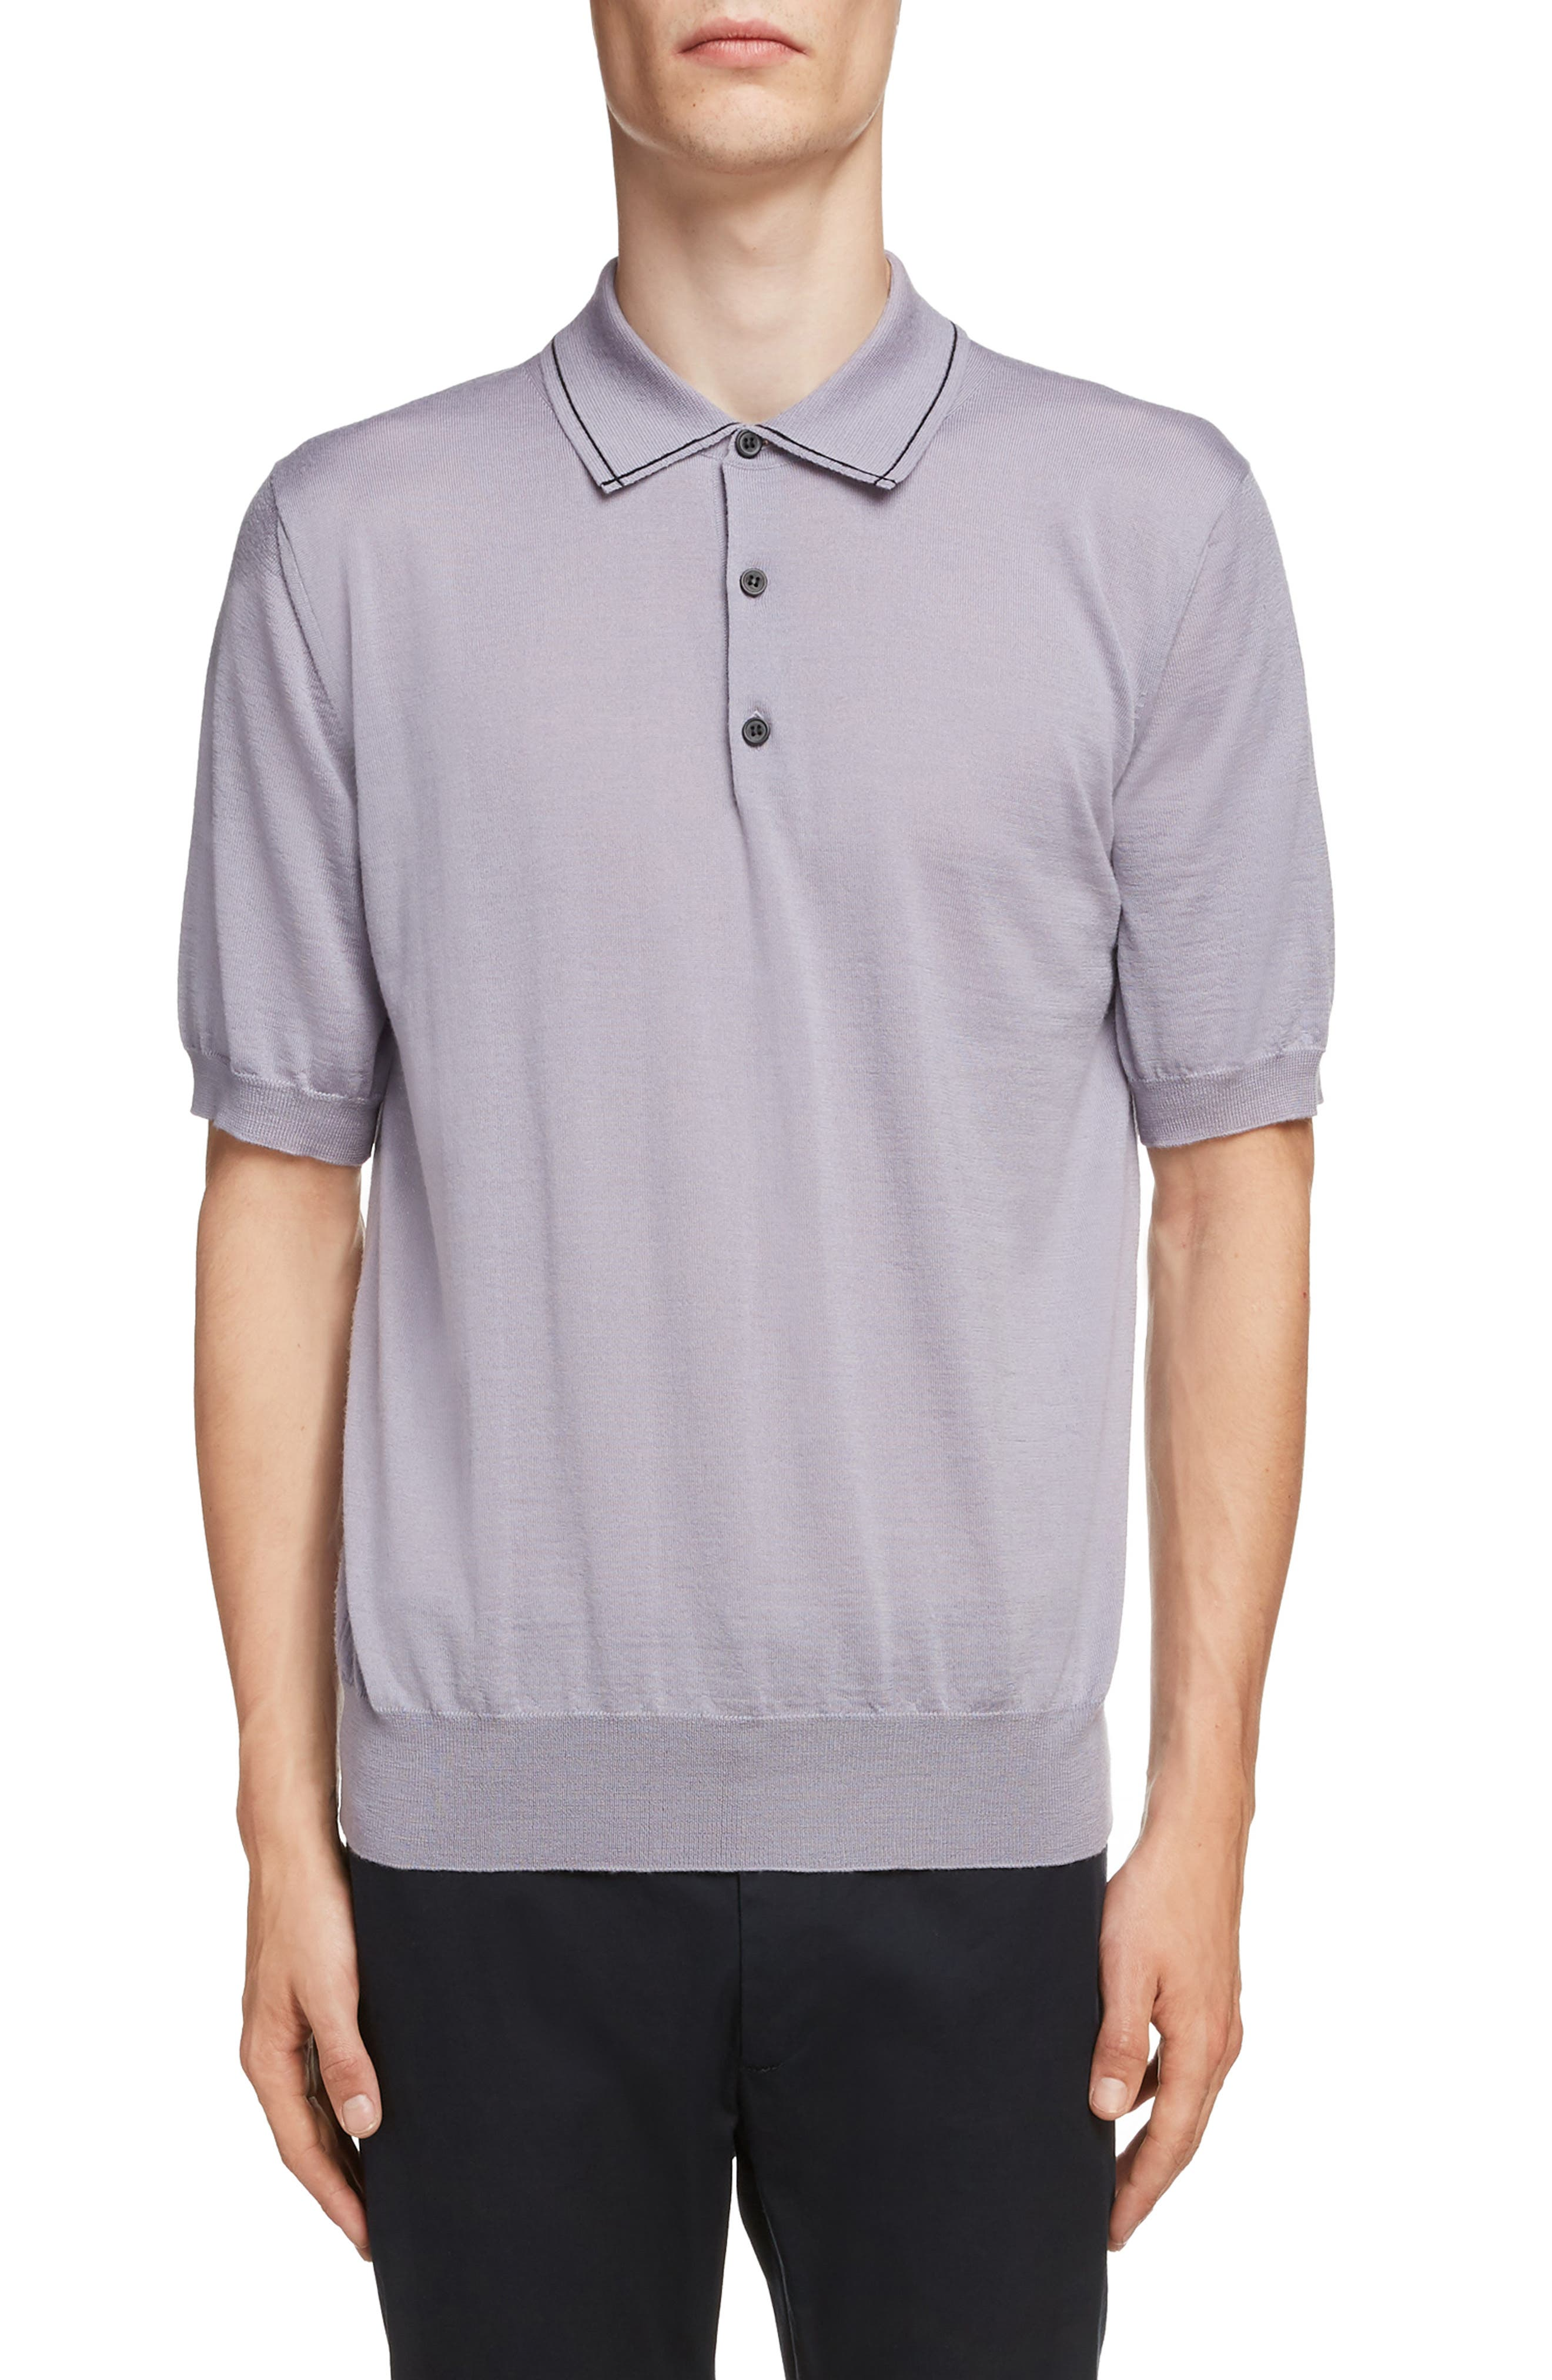 LANVIN, Piped Collar Wool Polo, Main thumbnail 1, color, LAVENDER